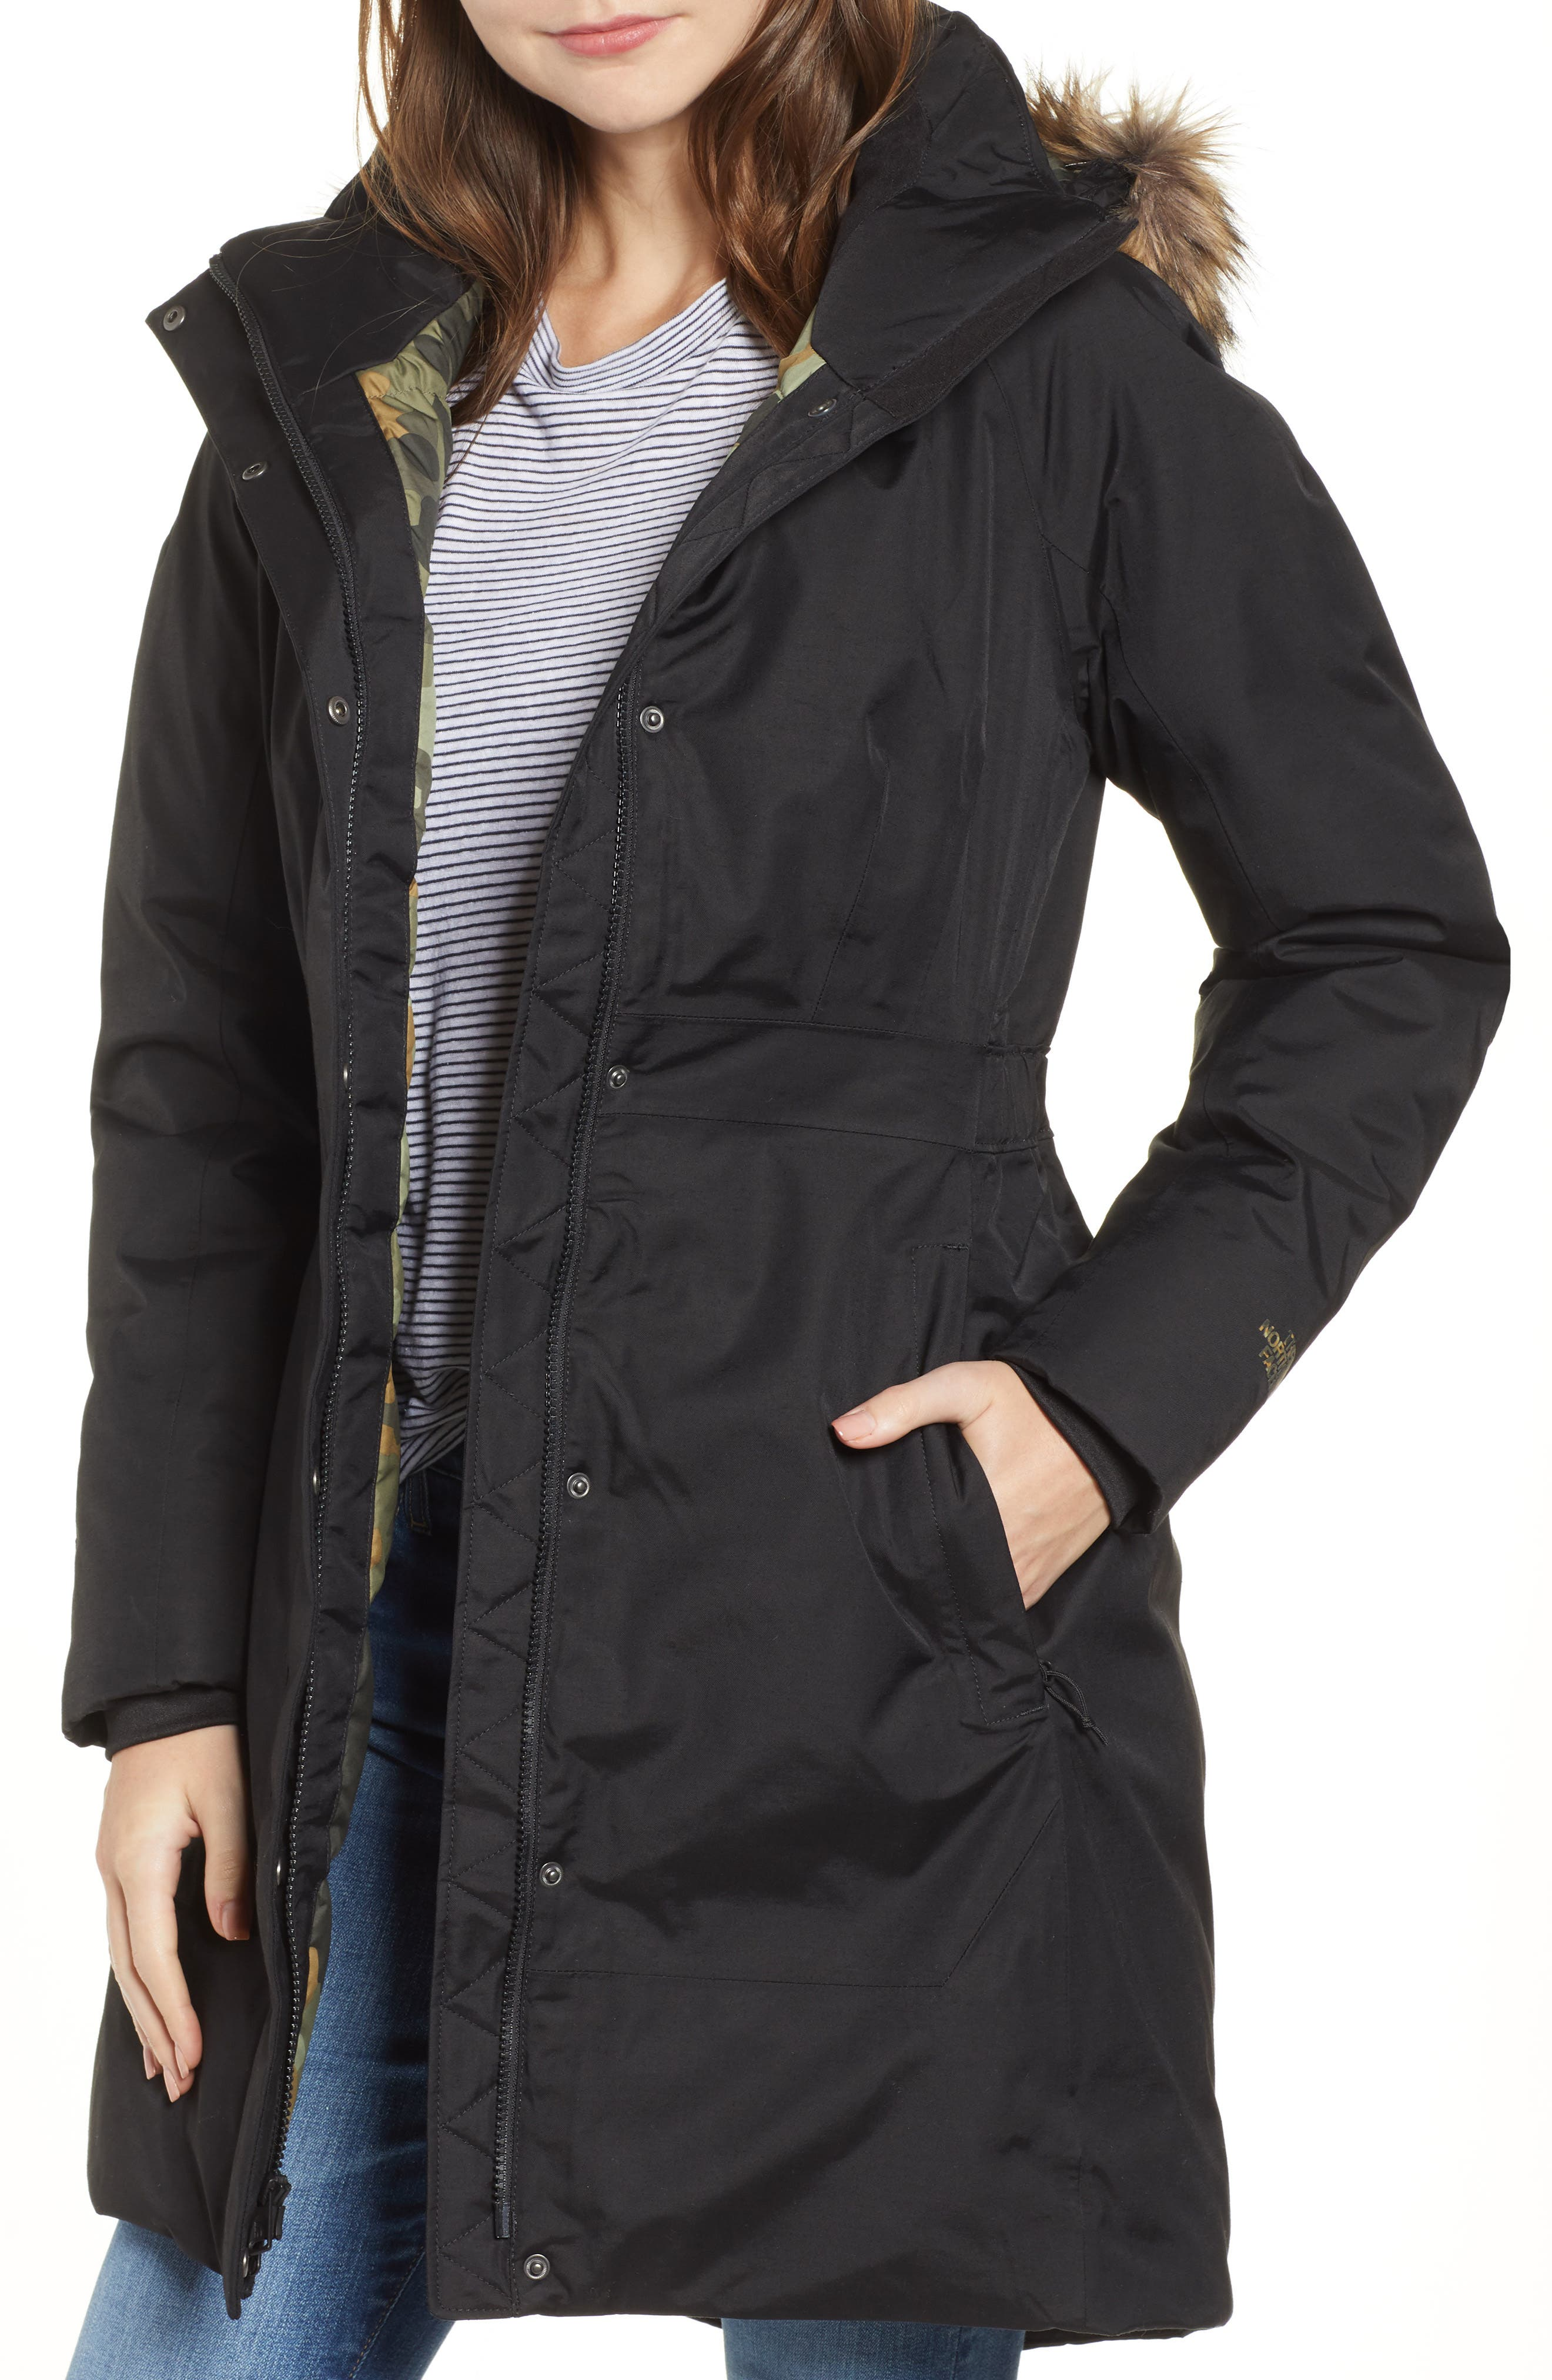 THE NORTH FACE Arctic II Waterproof 550 Fill Power Down Parka with Faux Fur Trim, Main, color, 001